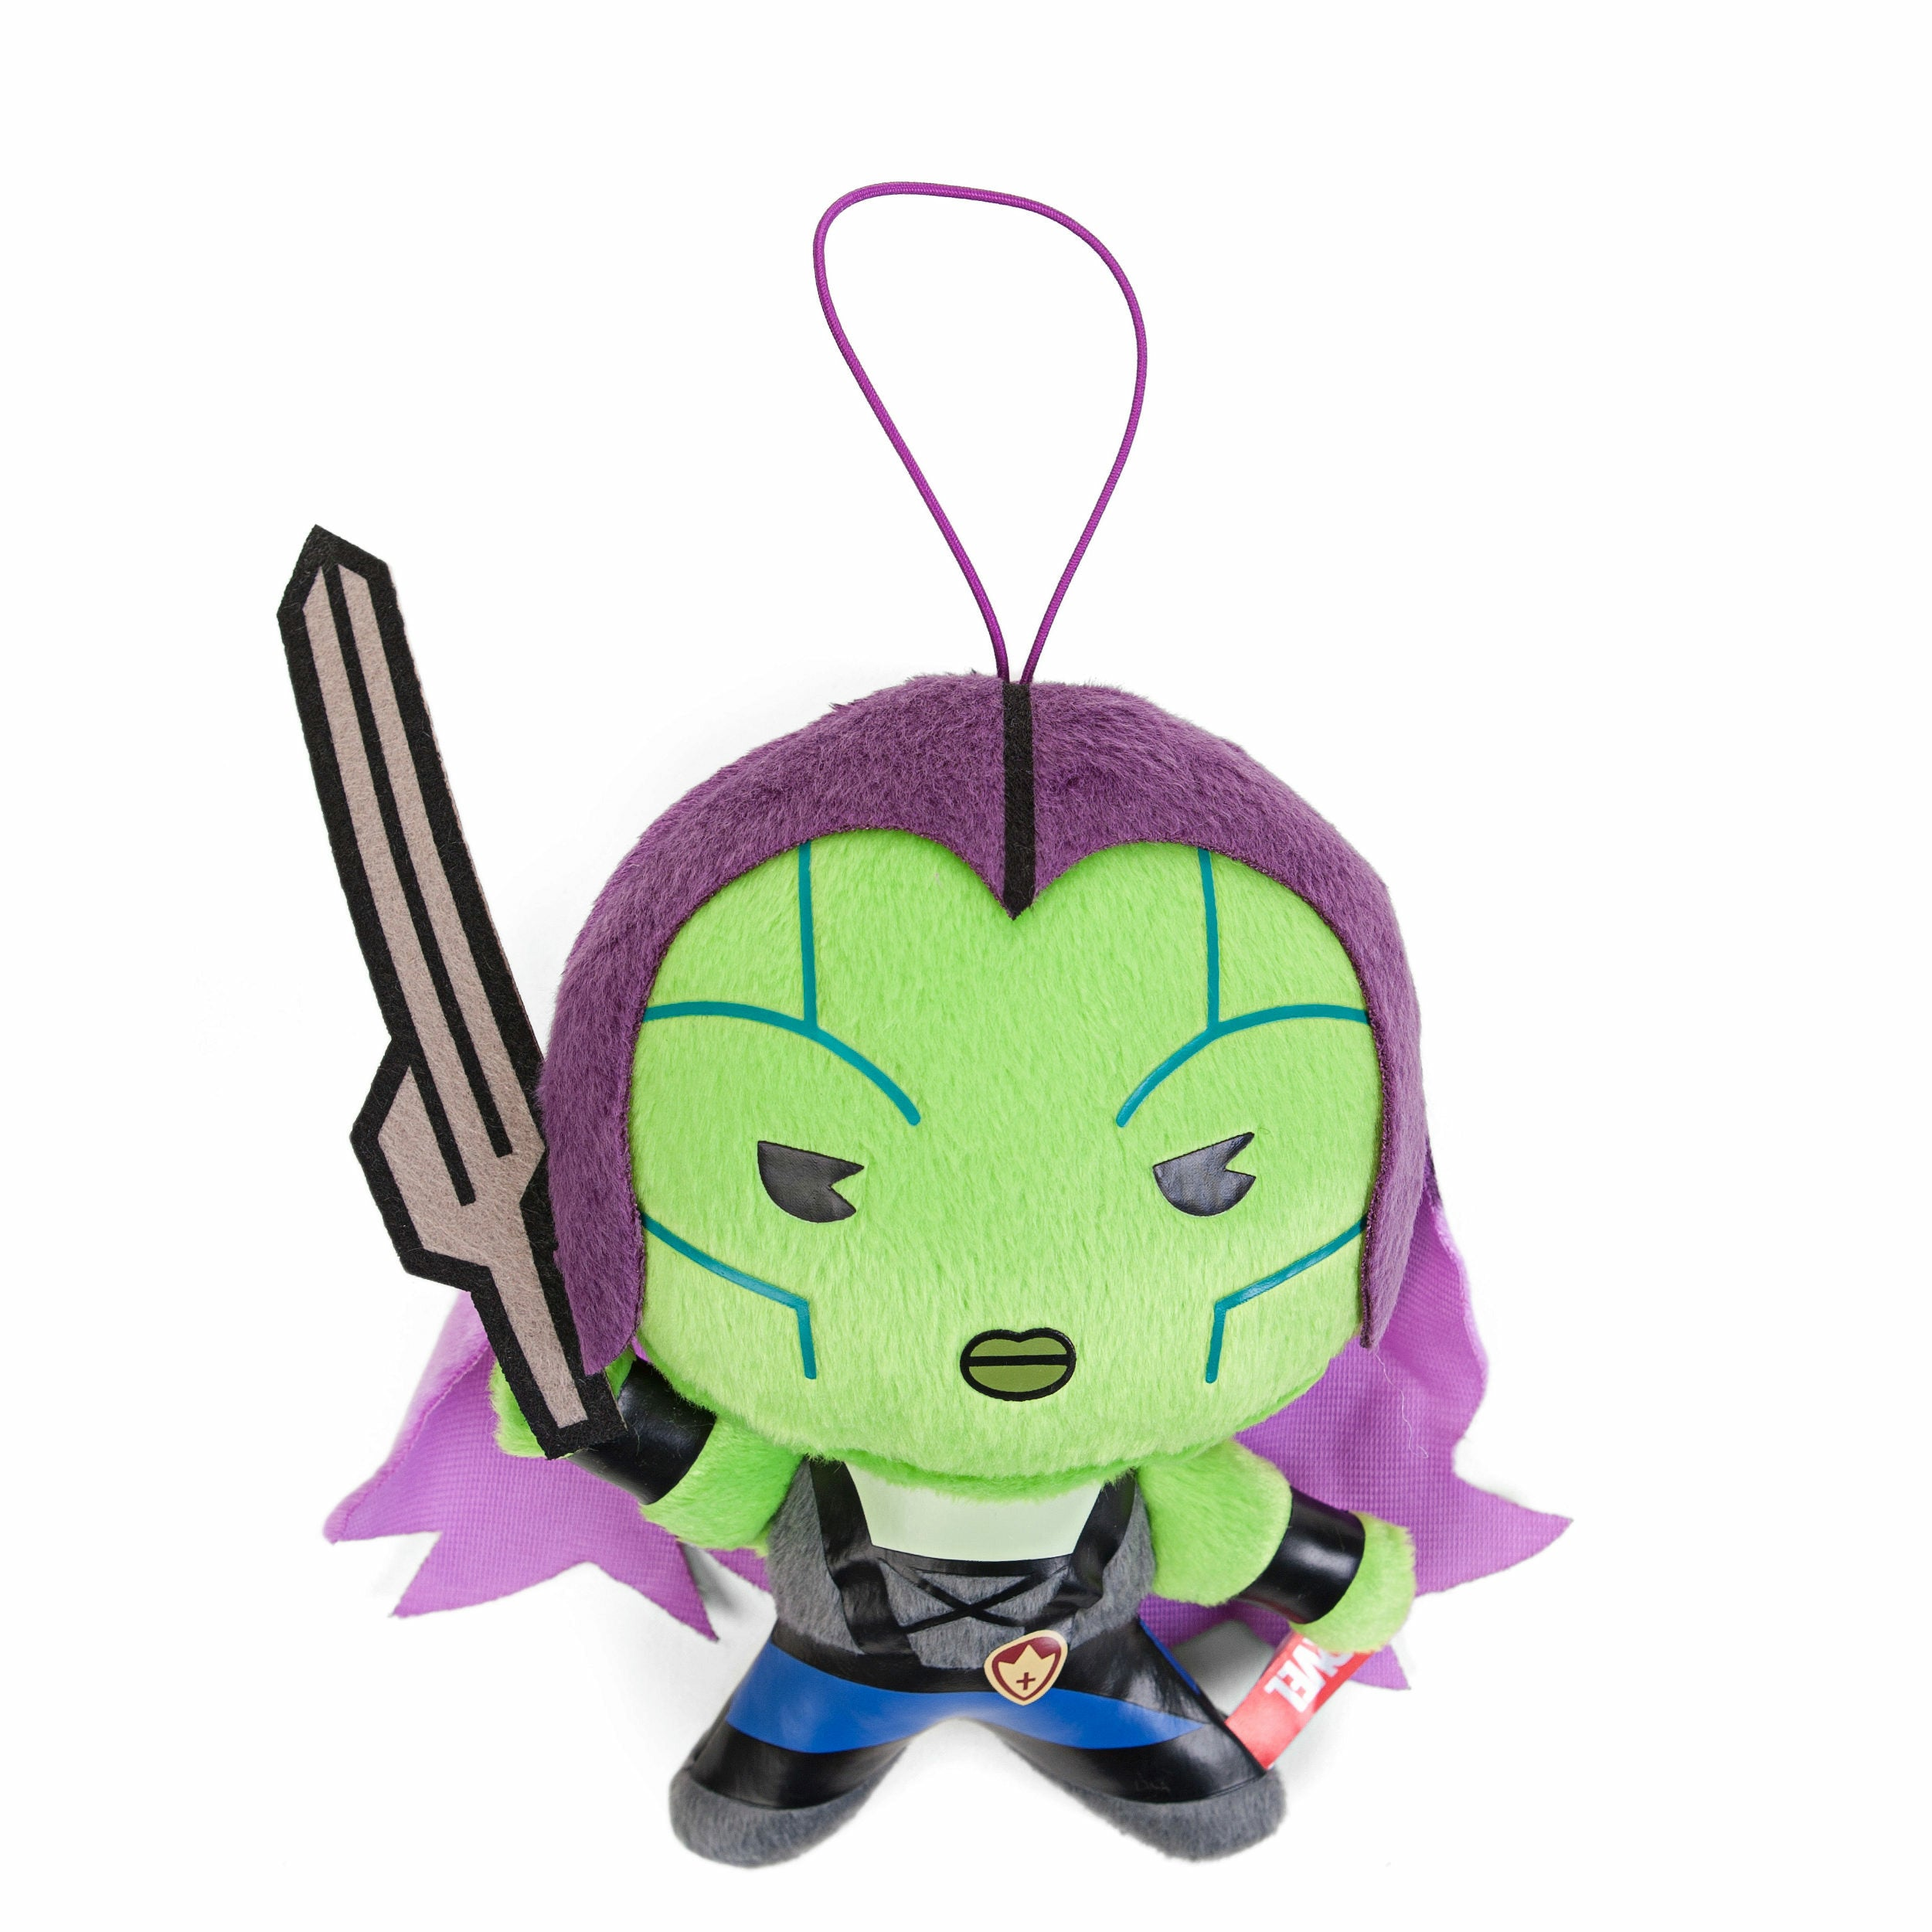 Marvel Guardians of the Galaxy Gamora 6 inch Plush Toy